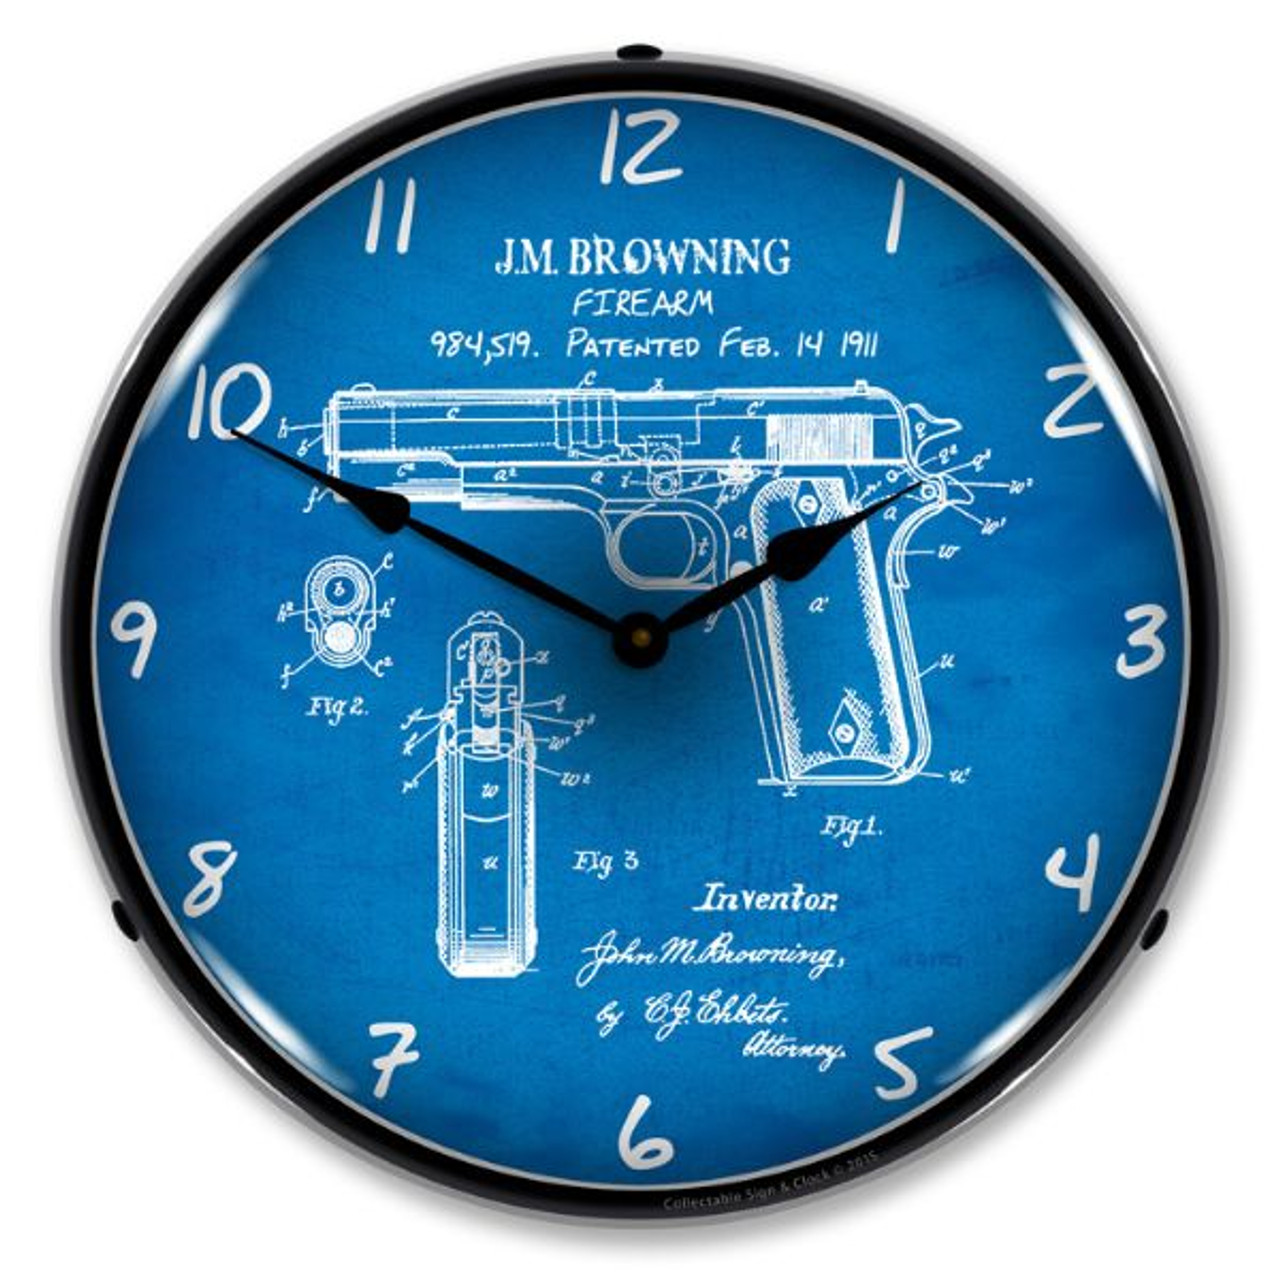 Colt 1911 Patent Lighted Wall Clock 14 x 14 Inches